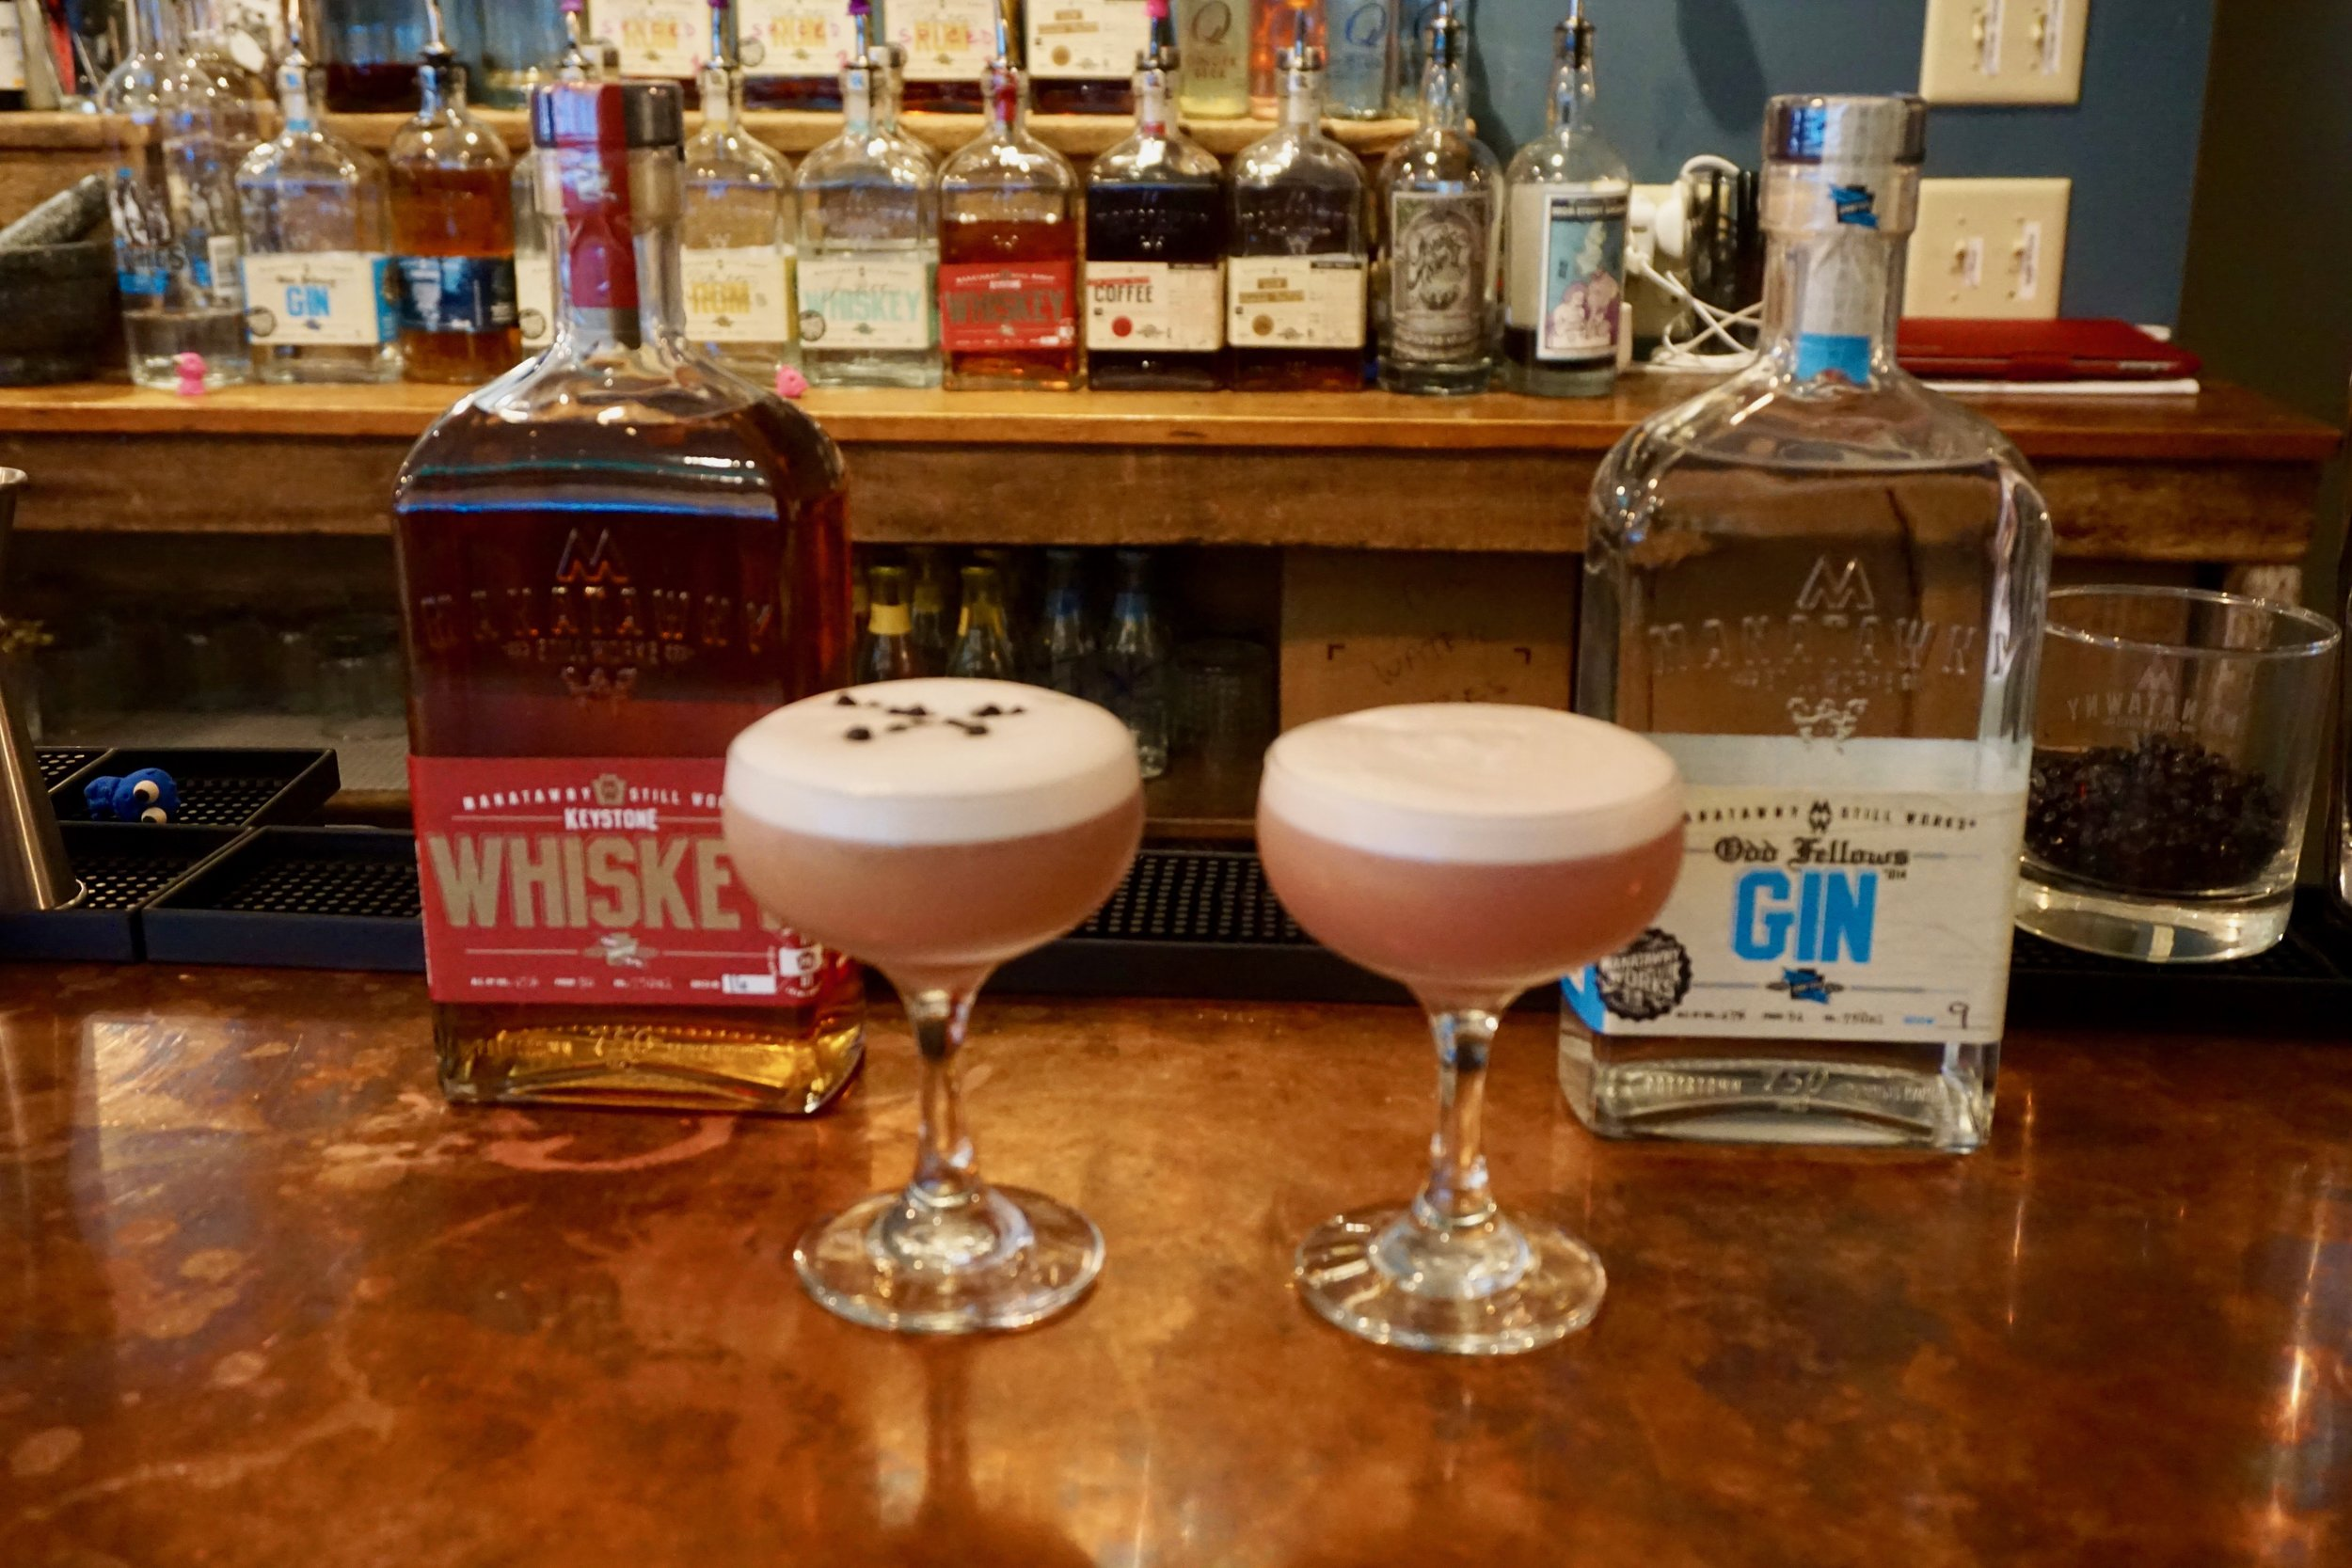 On the left: the MSW version | On the right: the classic Clover Club